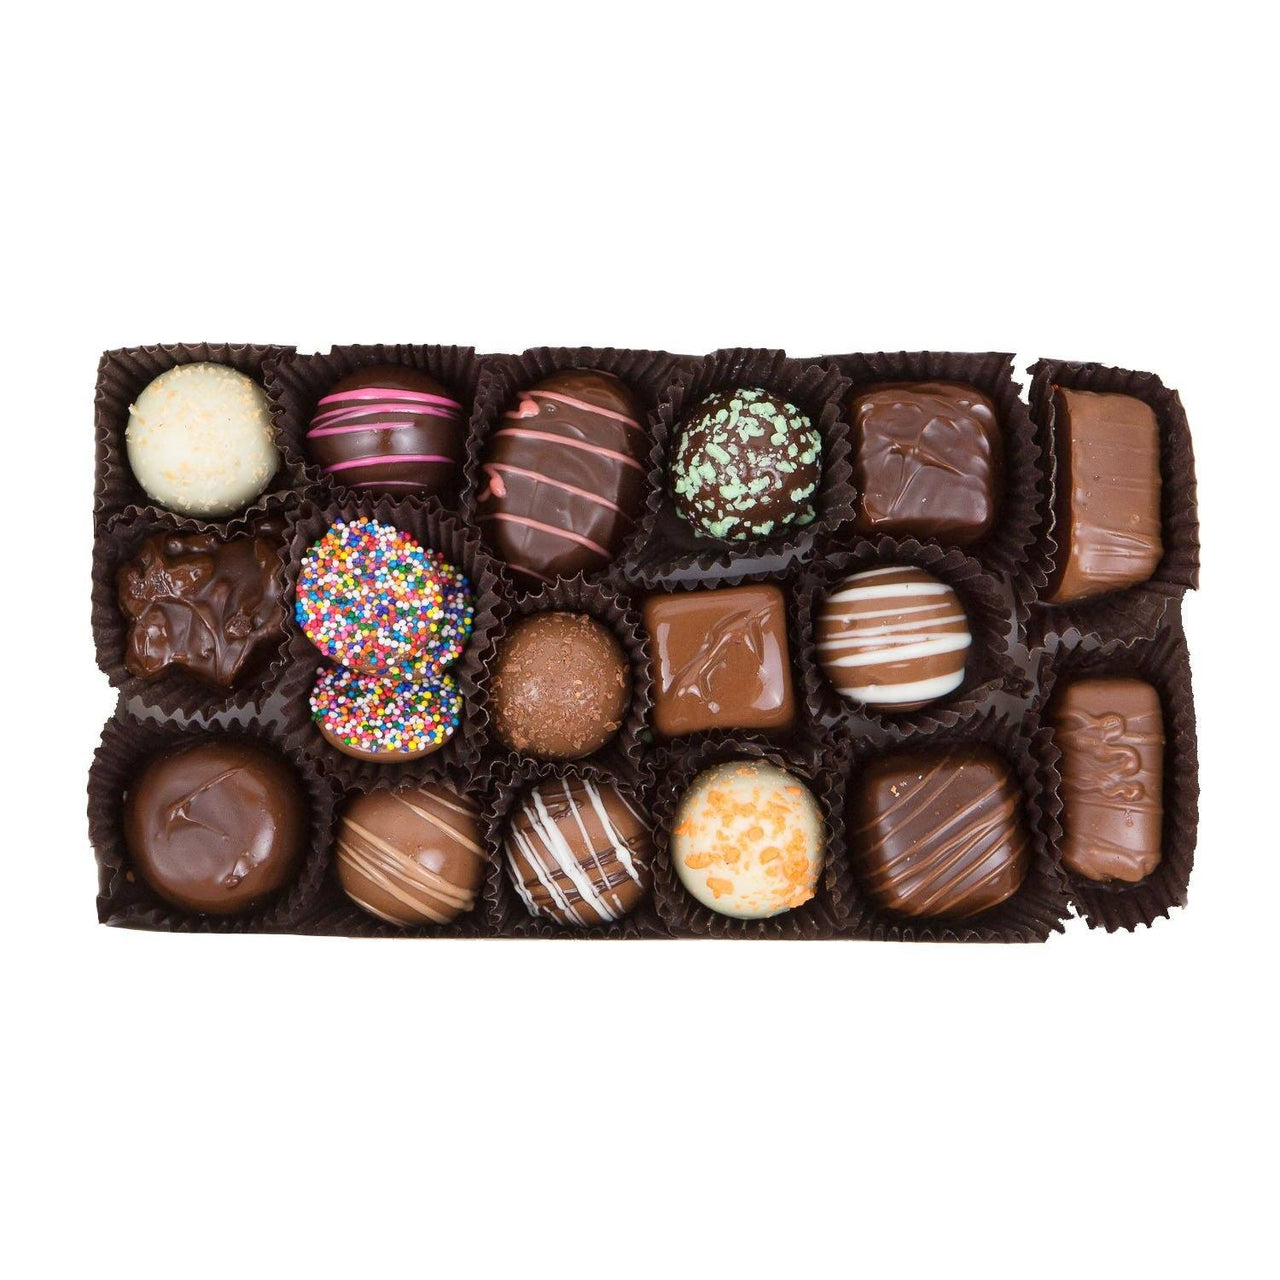 Stocking Stuffer Ideas  - Chocolate Assortment Gift Box - Jackie's Chocolate (4336459415667)